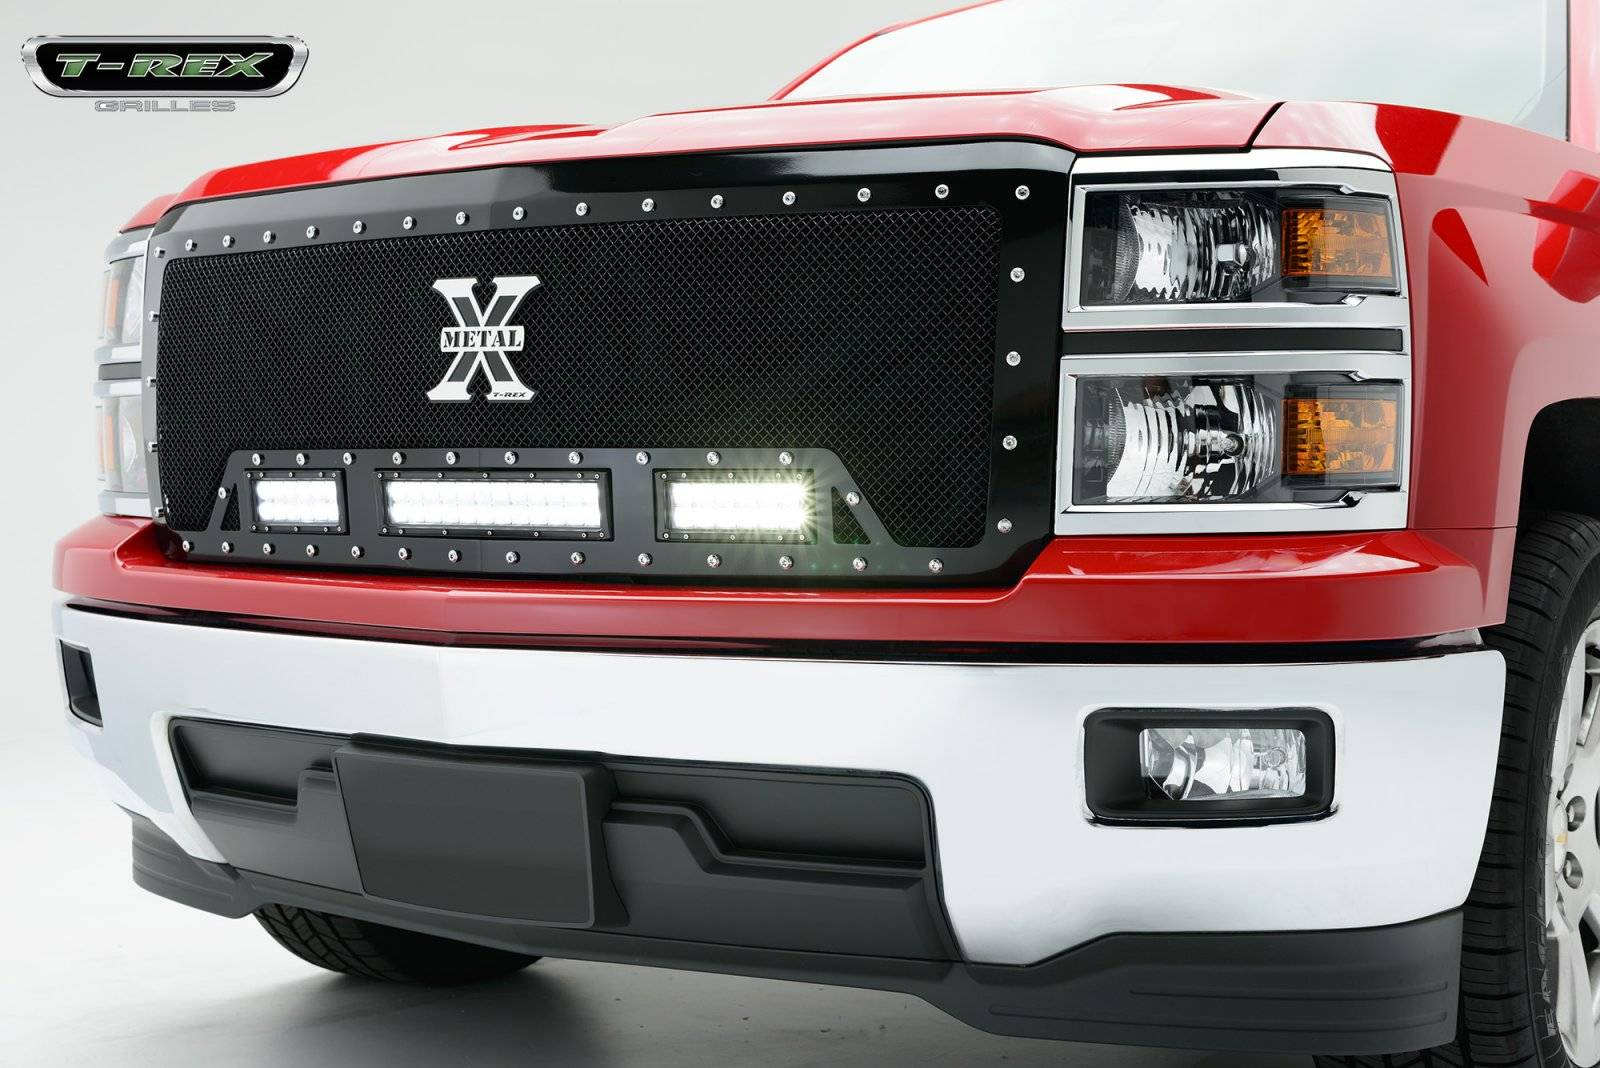 T rex chevrolet silverado torch series led light grille 2 6 and 1 12 led bar formed mesh grille main replacement 1 pc black powdercoated mild